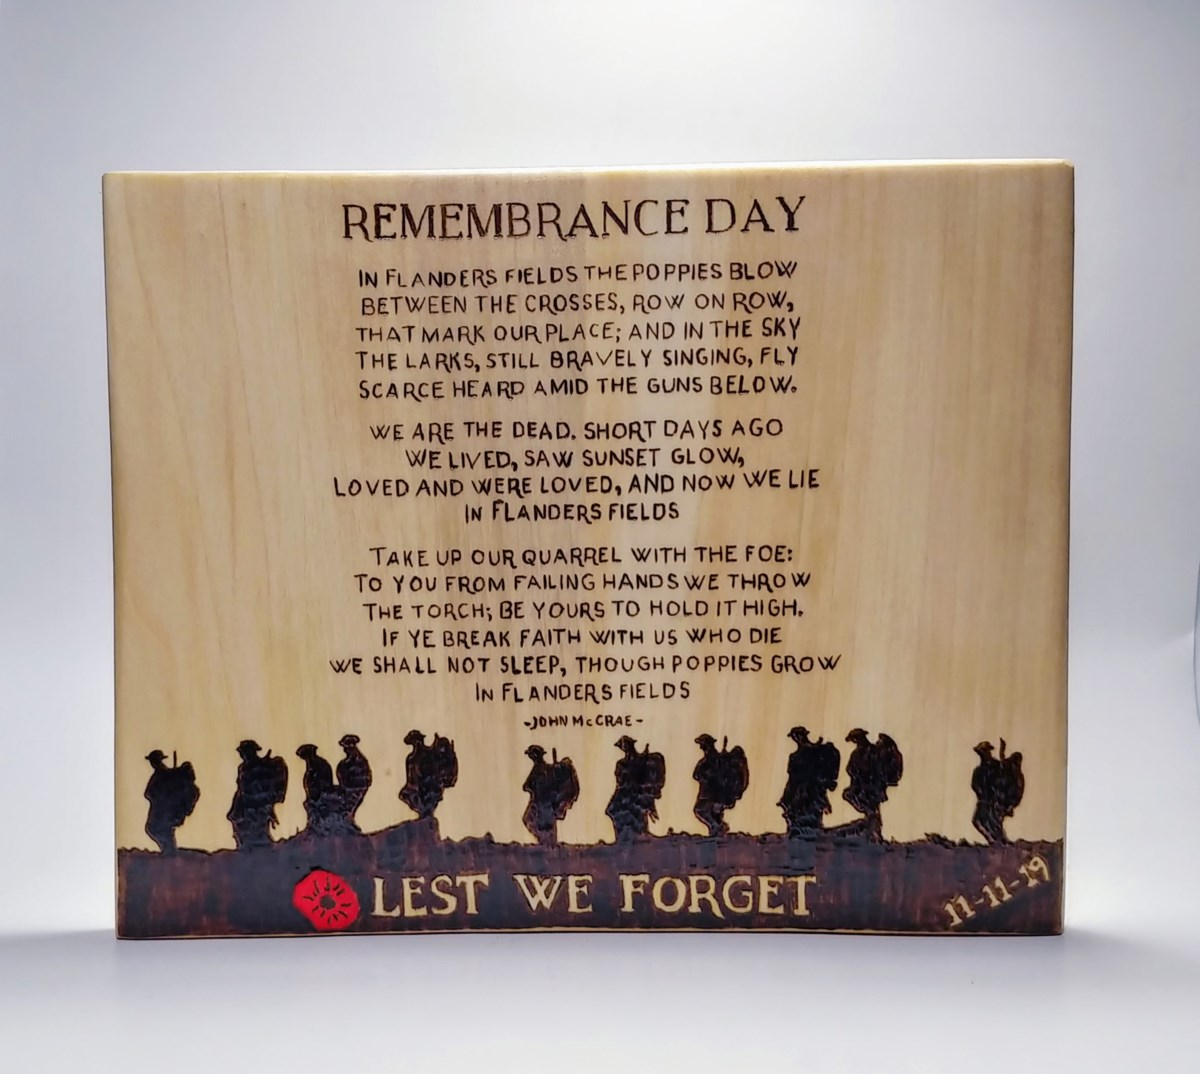 Woodworking Jobs In Kitchener Waterloo: Cambridge Man Auctioning Off Remembrance Day Wood Burning